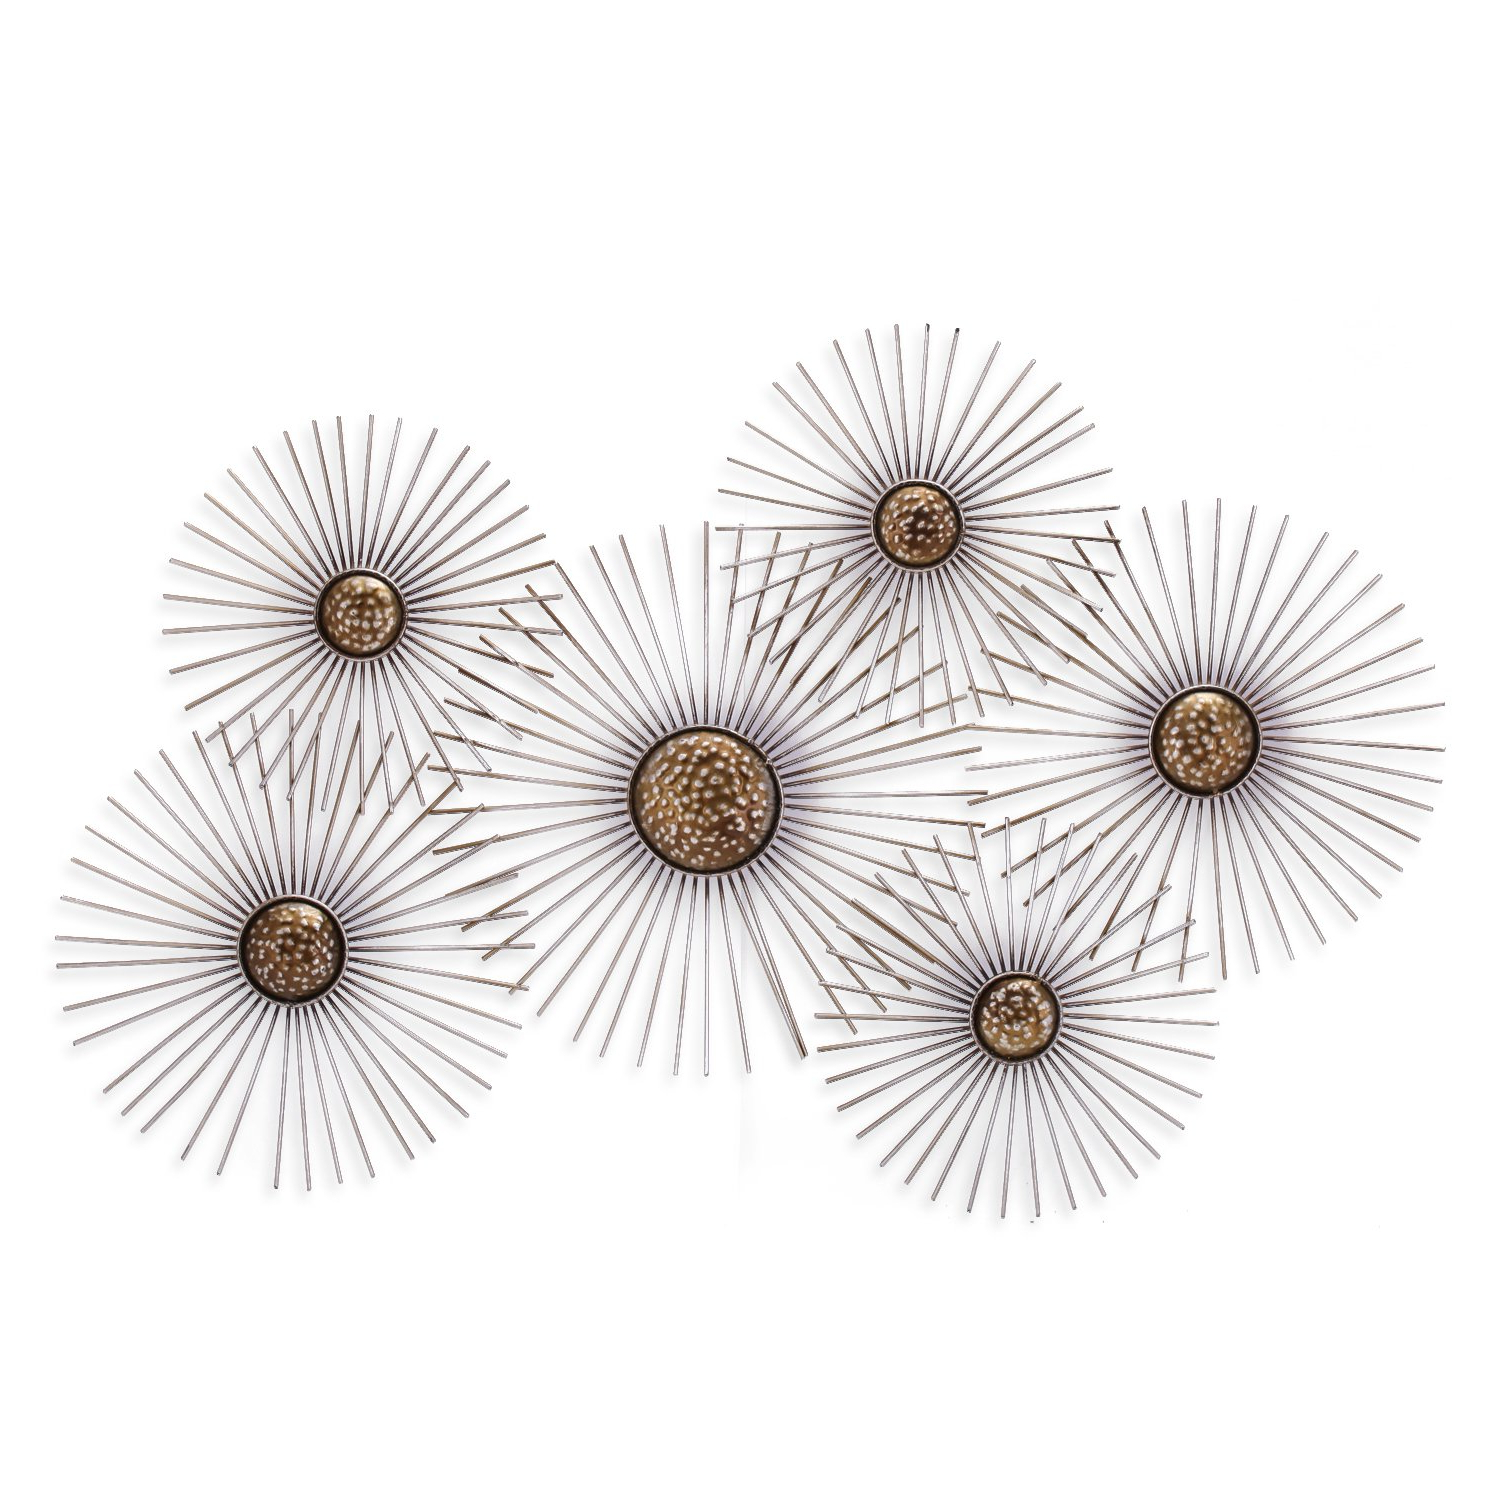 Most Popular 2 Piece Starburst Wall Decor Sets Intended For Amazon: Asense Flower Starburst Metal Wall Art Sculptures Home (View 14 of 20)